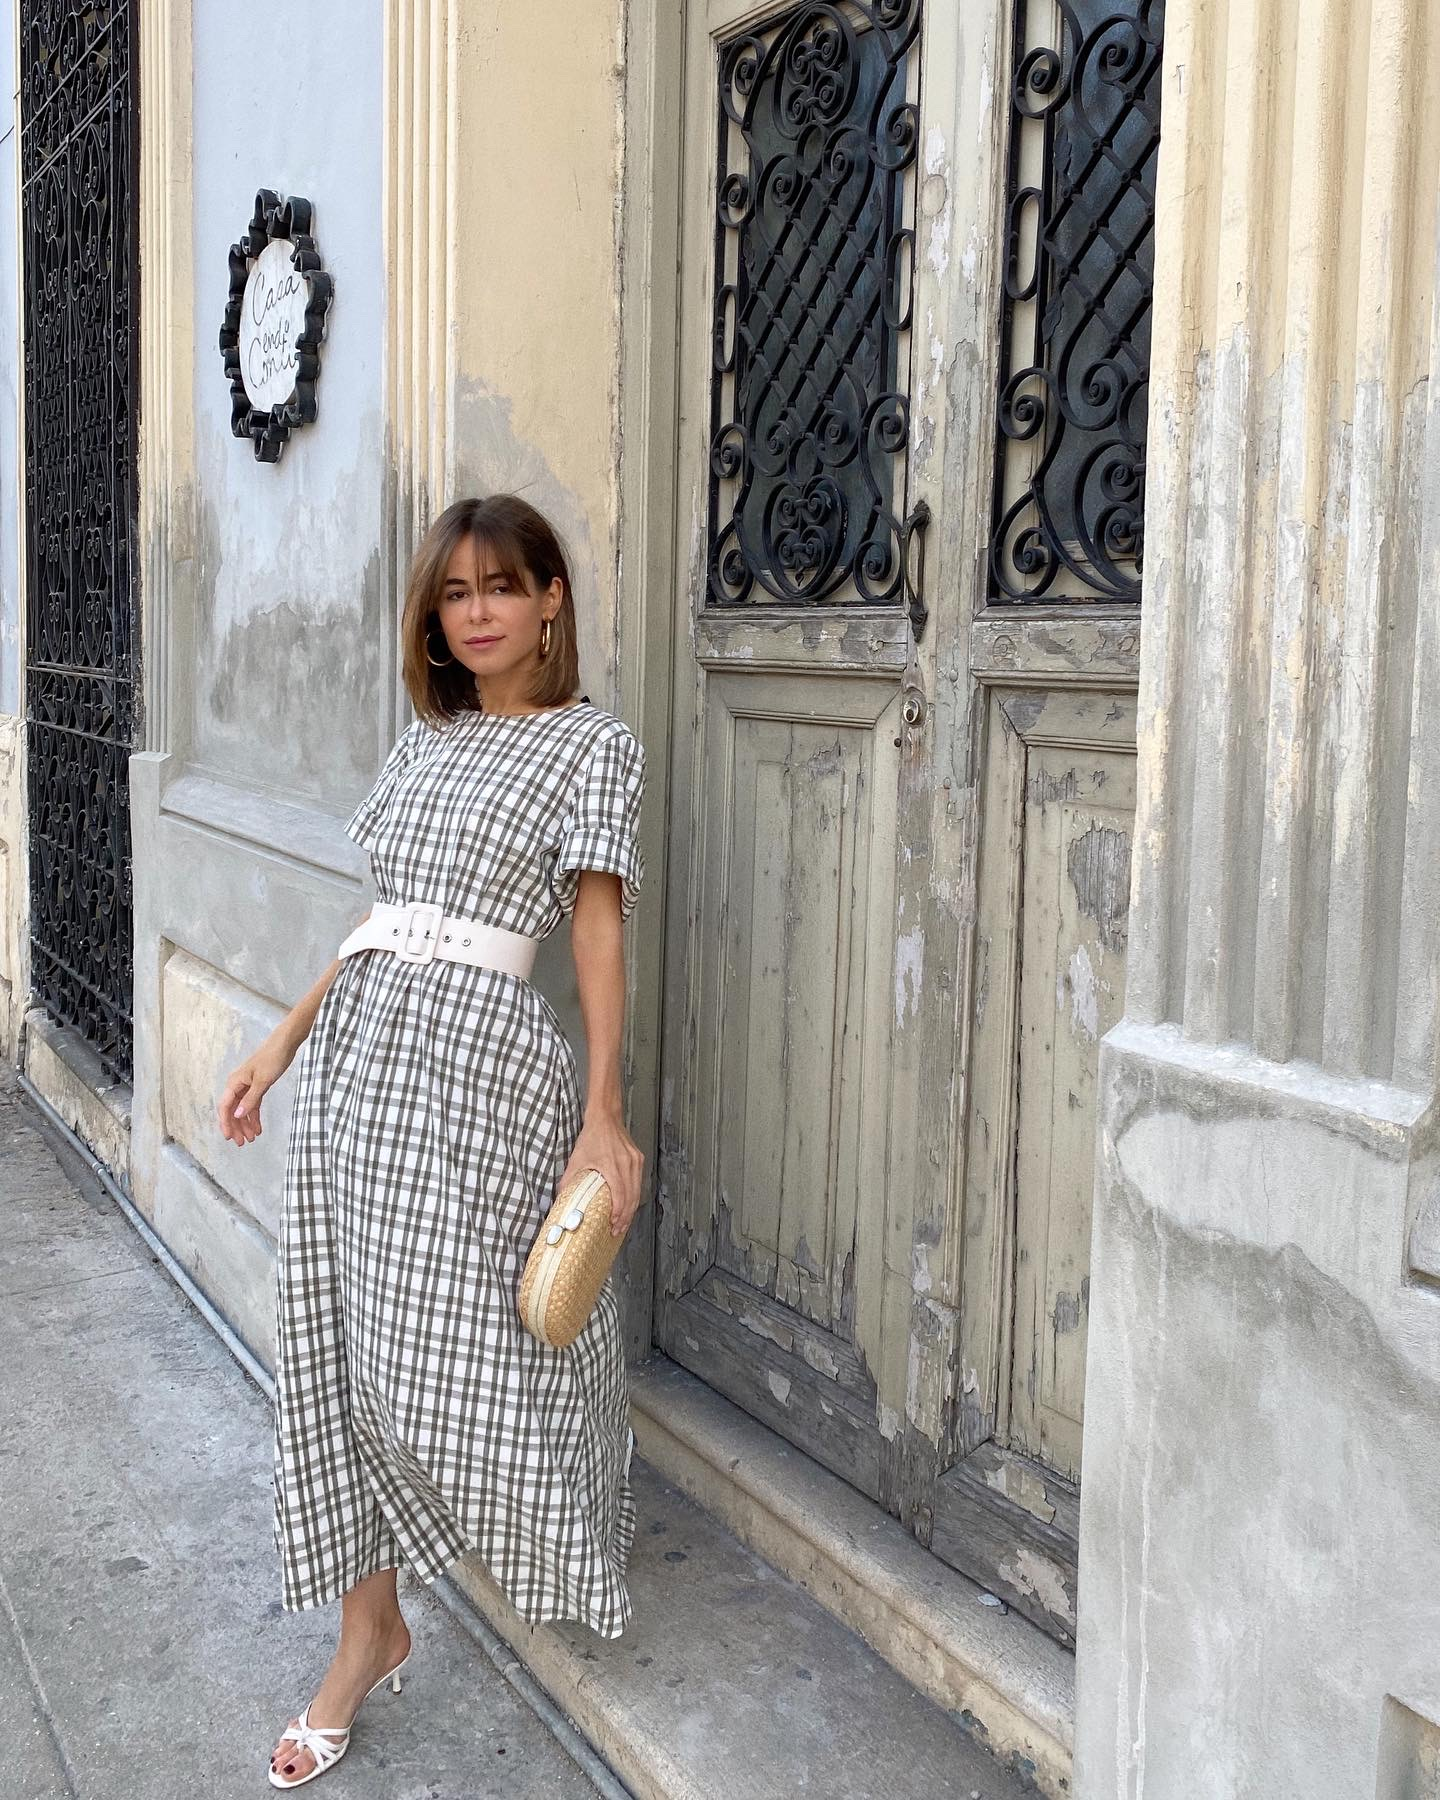 Blogger Stephanie Hill wears #ootd featuring Zara dress on The Style Bungalow